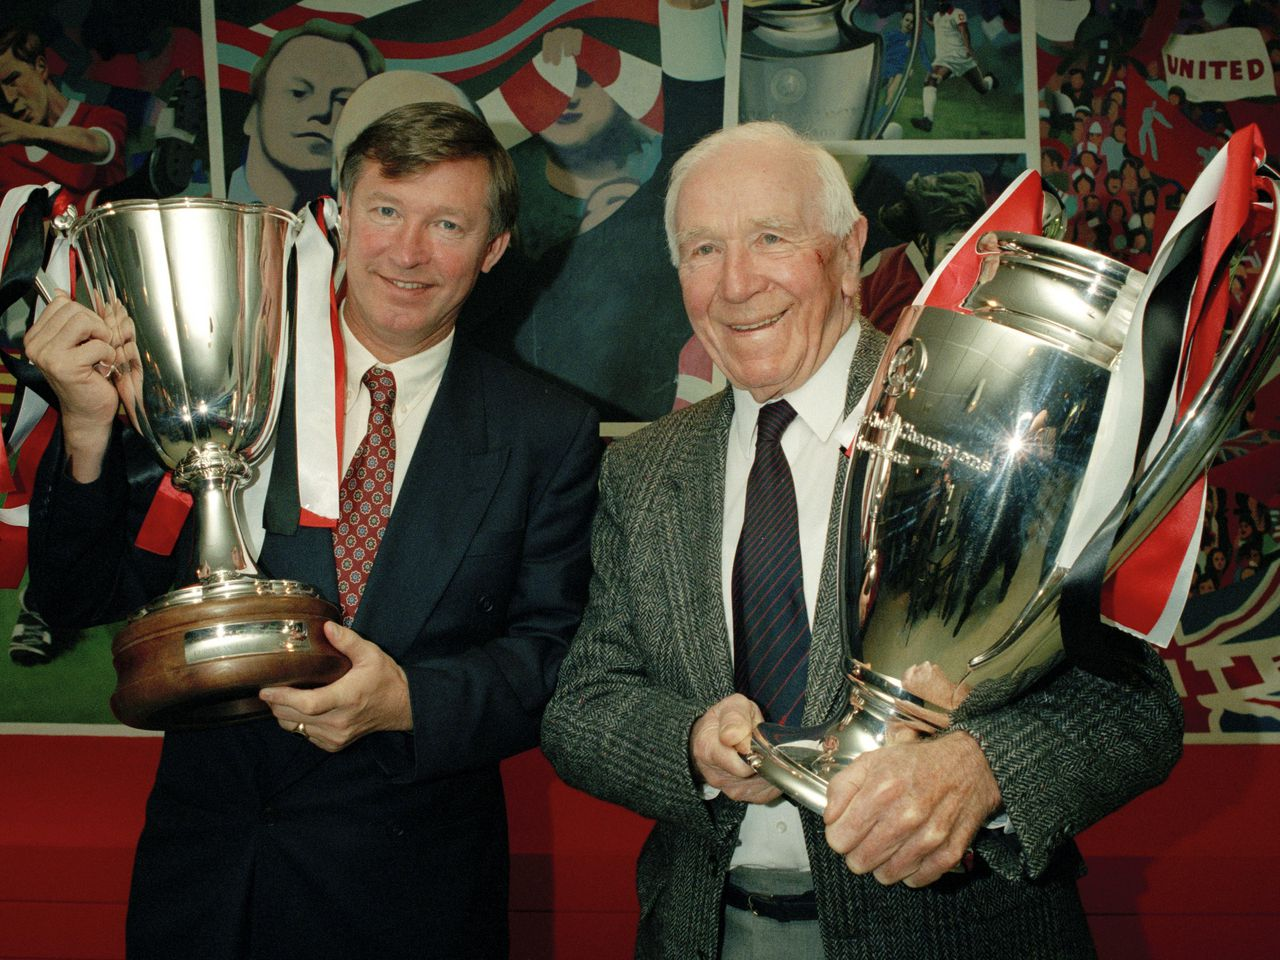 Sir Alex Ferguson pays tribute to the Busby Babes 60 years after Munich Air  Disaster | Manchester United